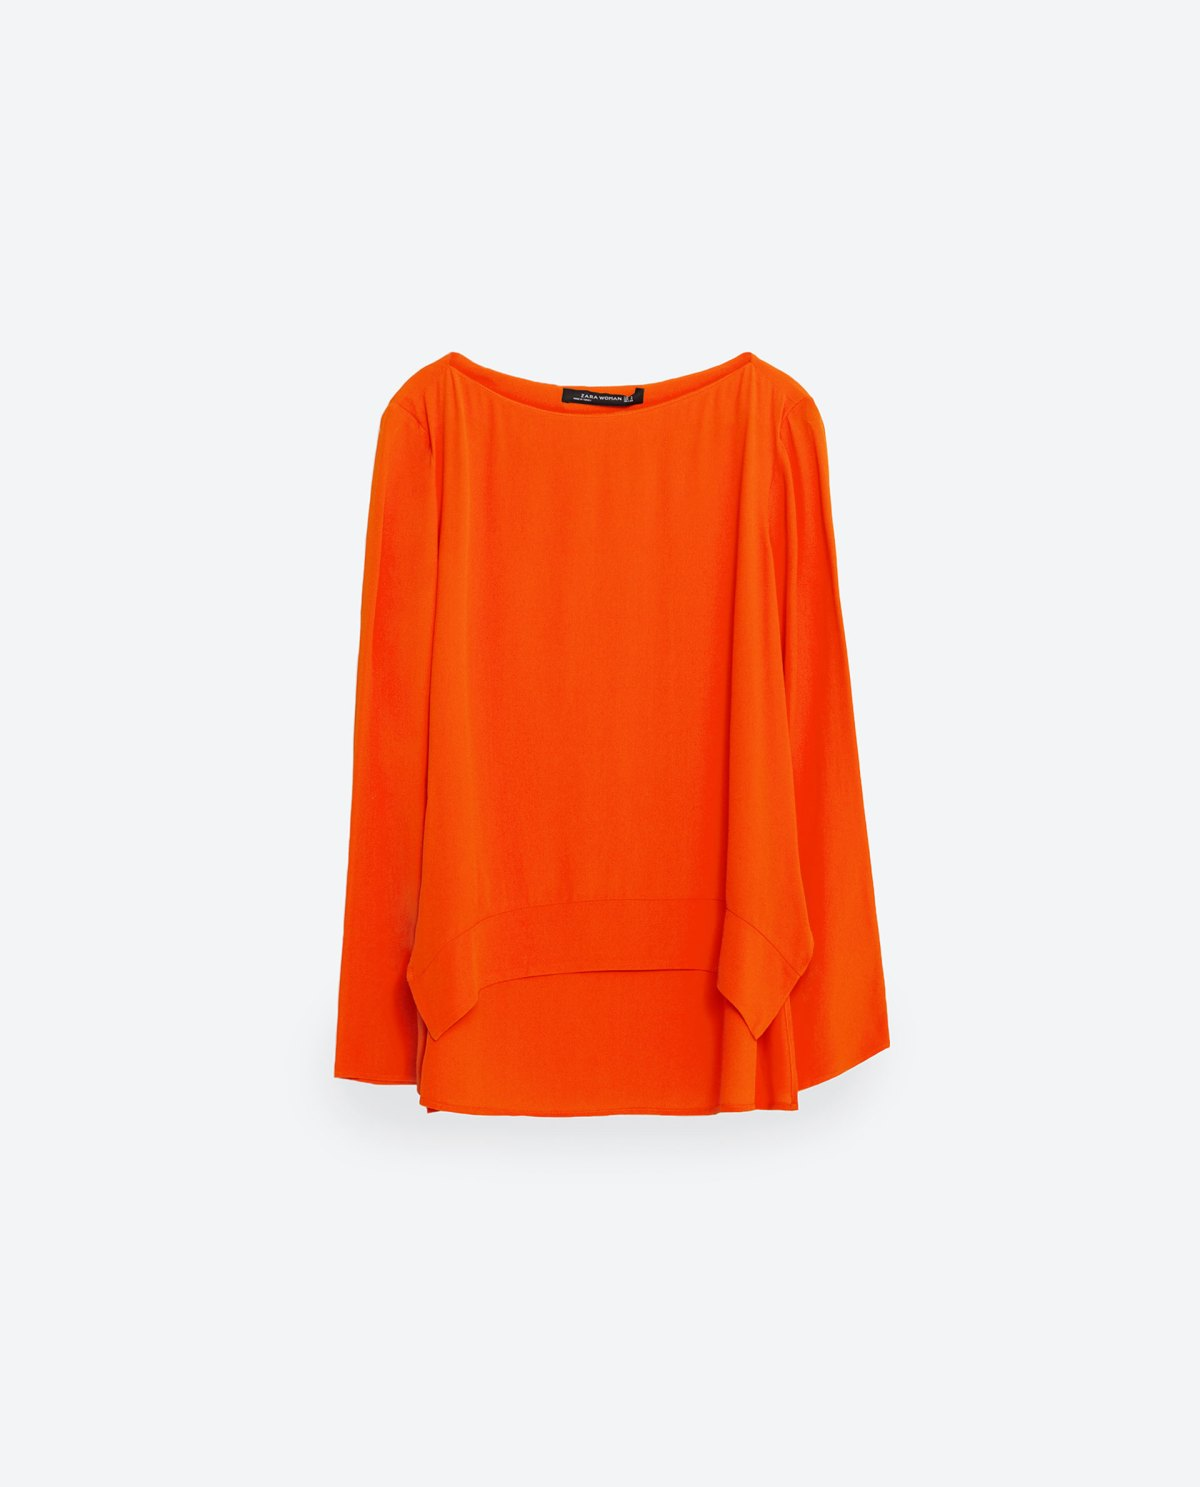 Orange boat neck blouse